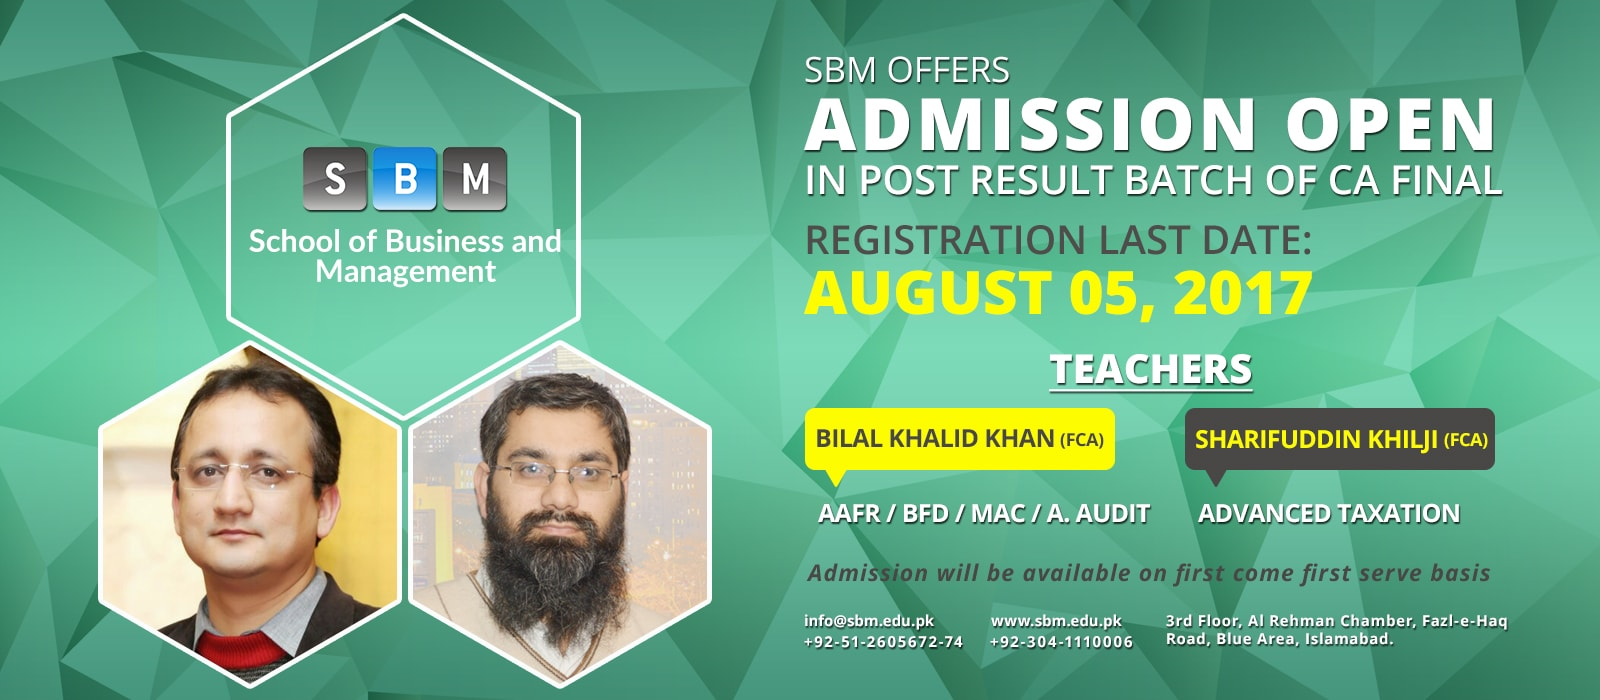 SBM Offers Post Result Batch of CA Final from 05 August